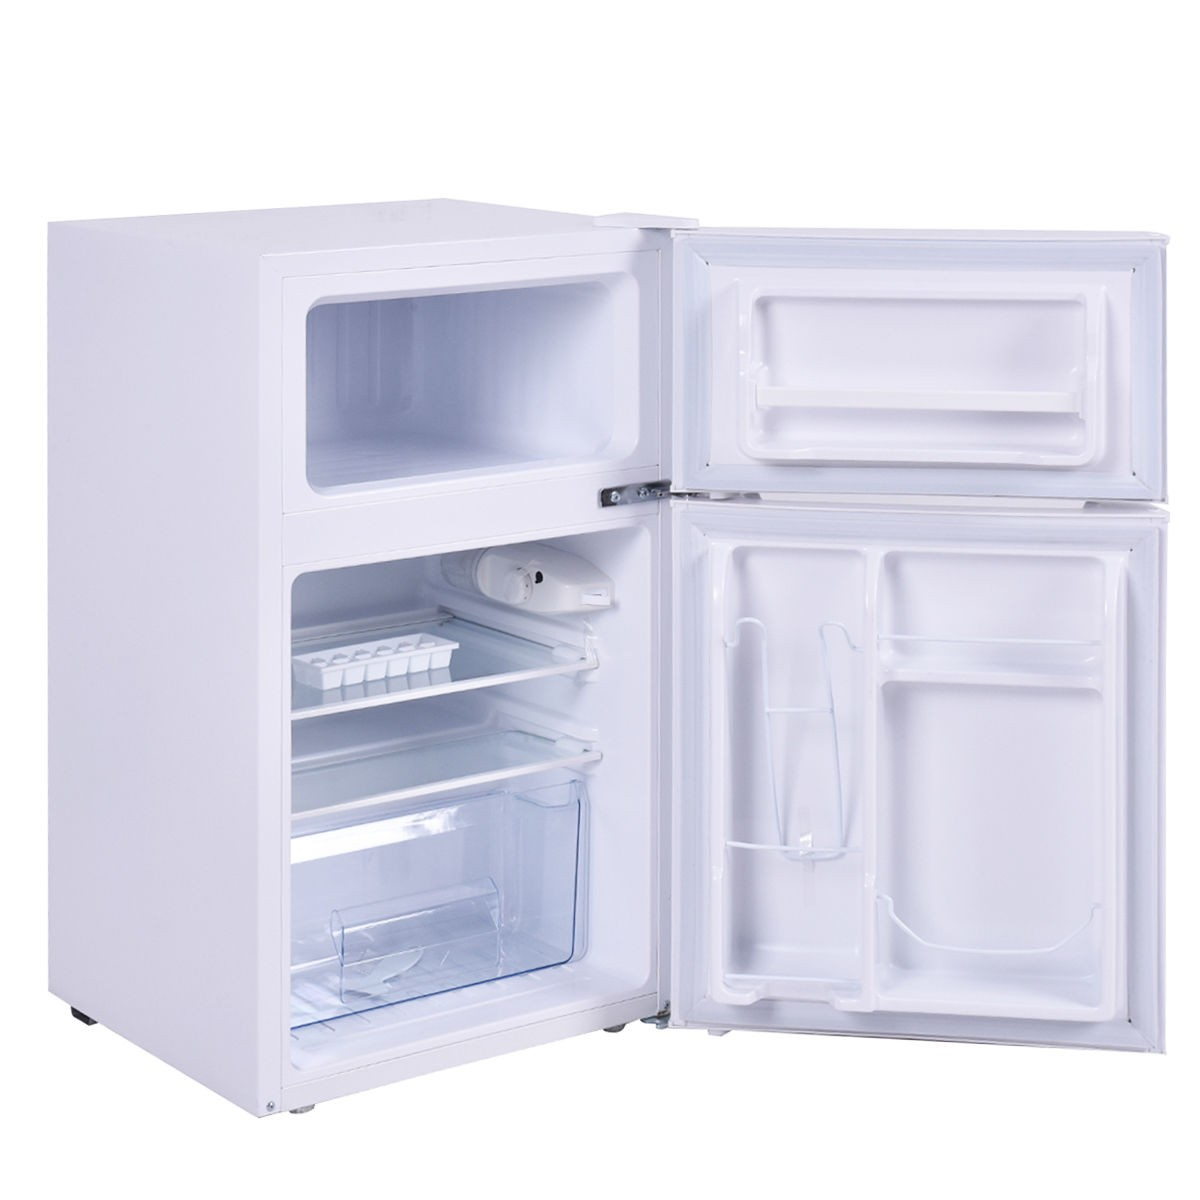 White Color 3 2 cu ft Mini Refrigerator and Freezer Small pact fice Frid